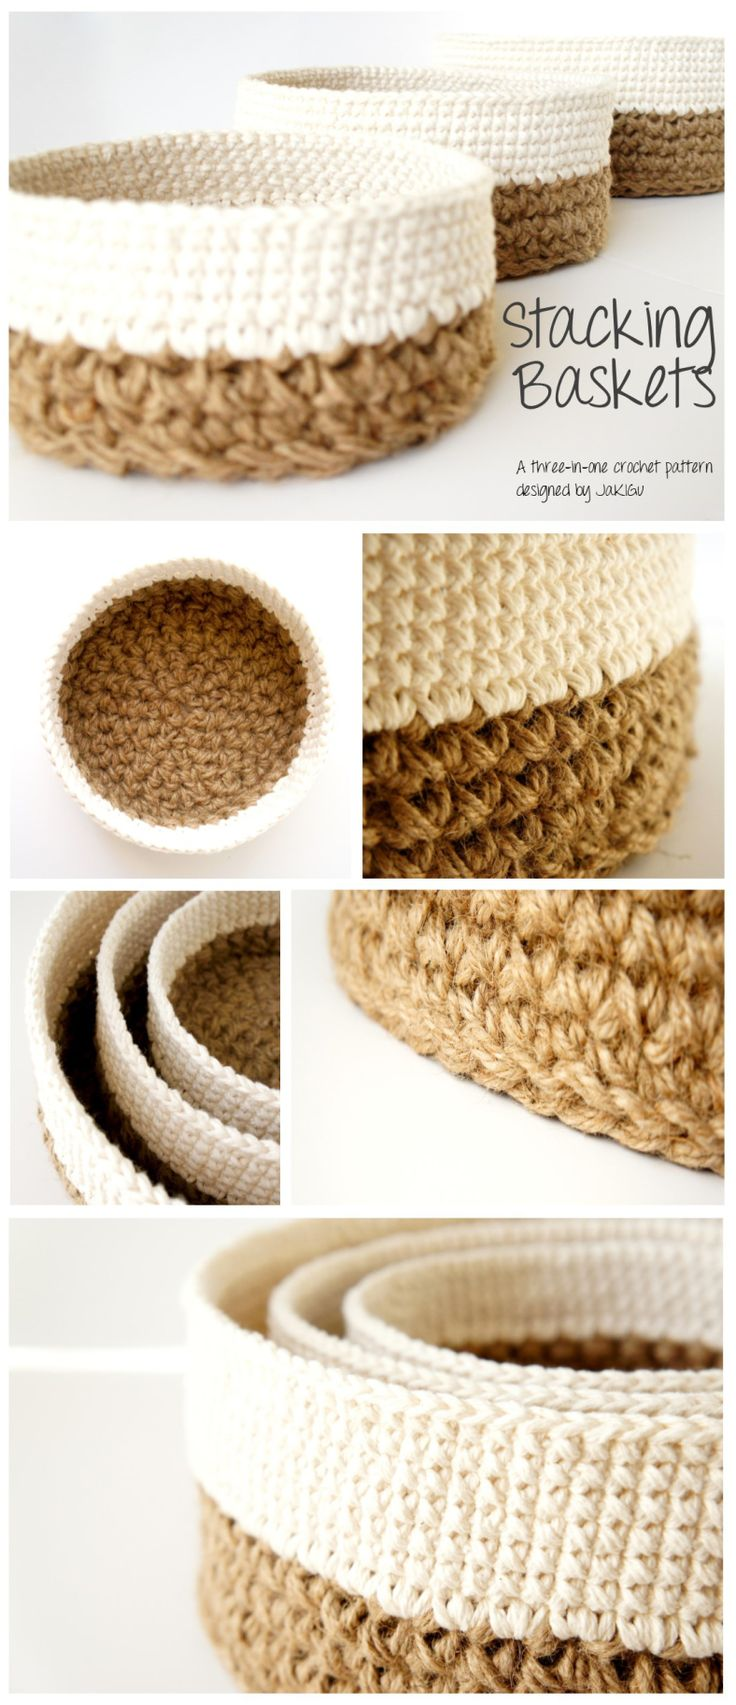 Stacking Baskets Crochet Pattern by JaKiGu – Three nesting baskets worked in jute and cotton